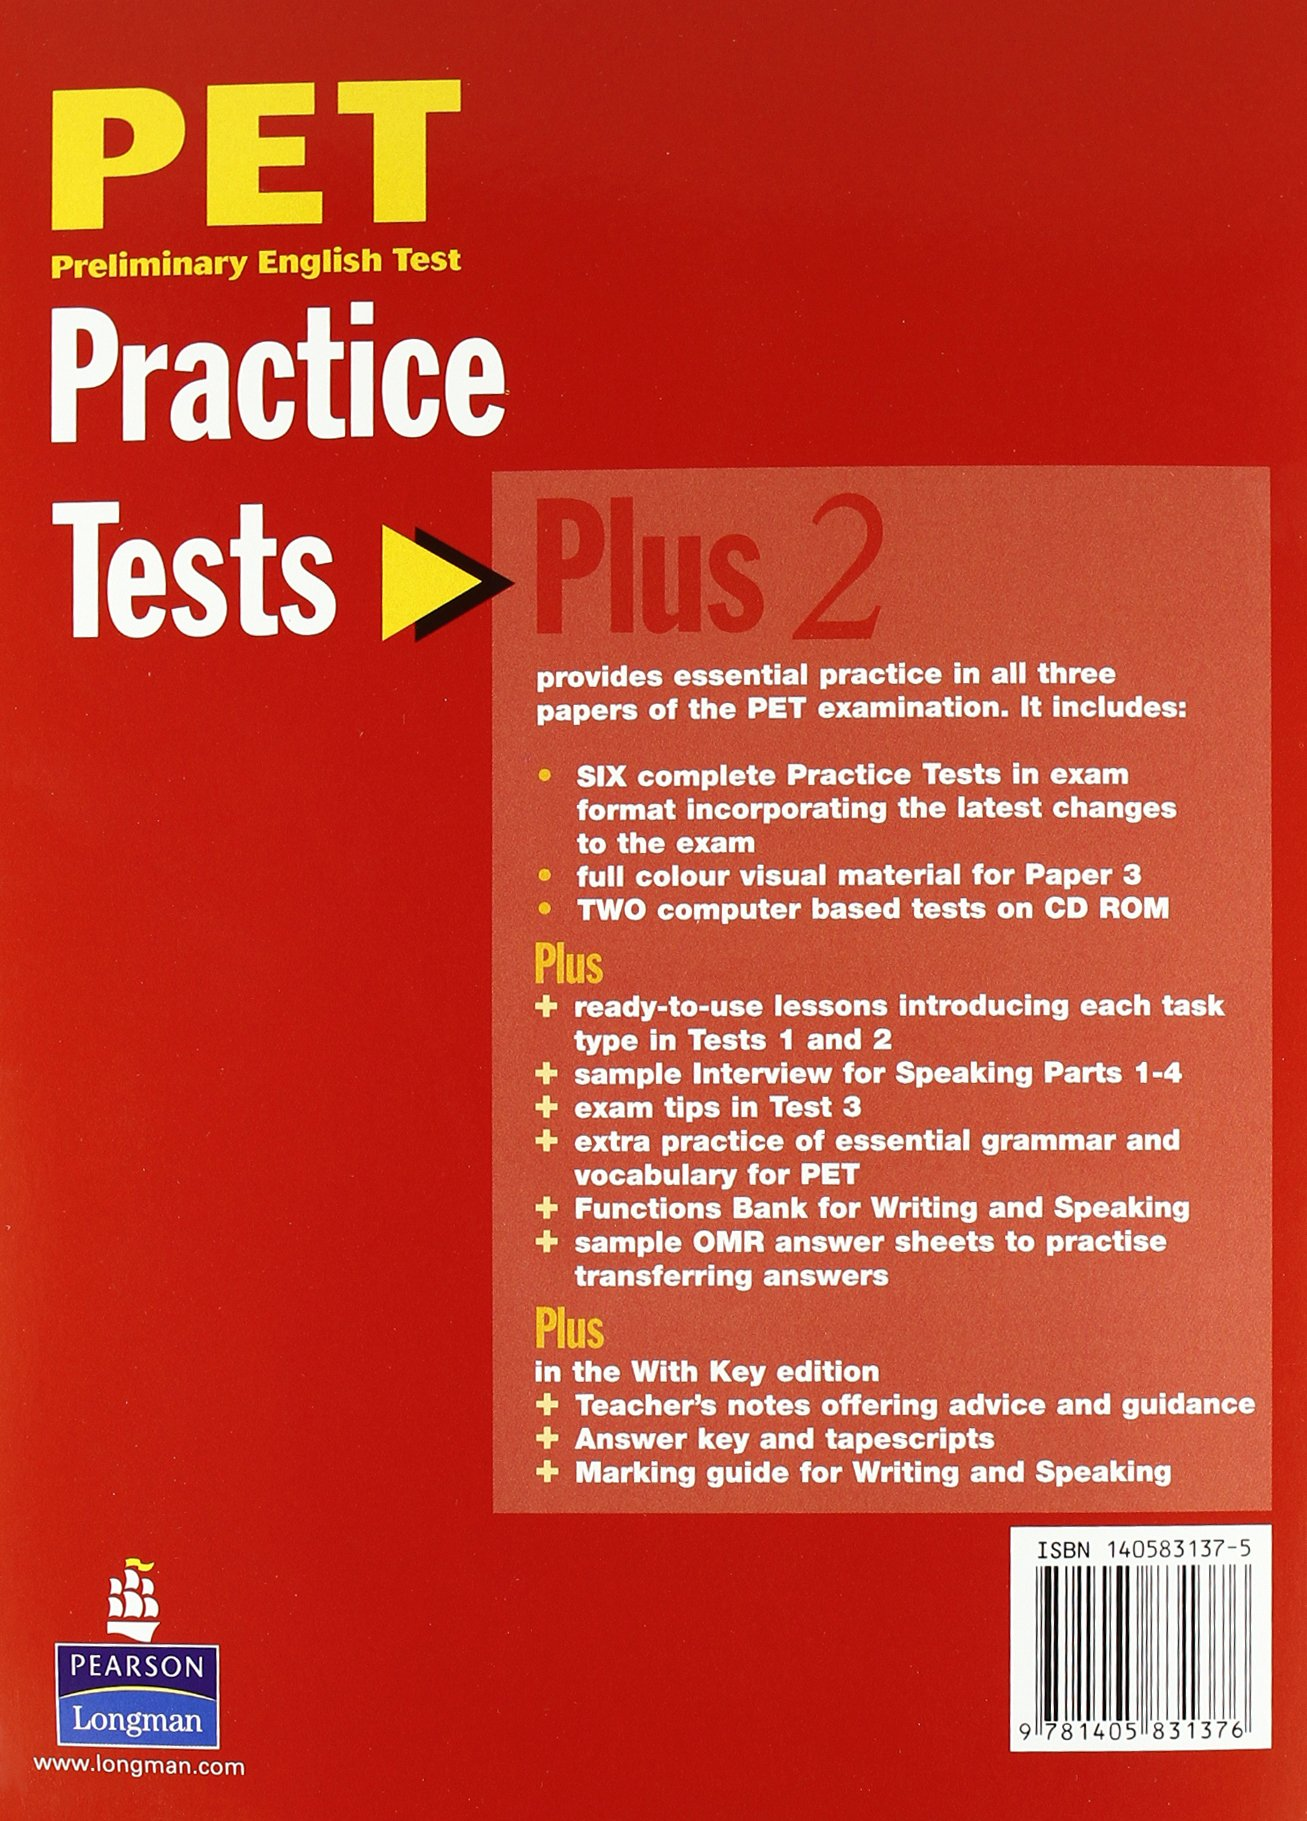 PET Practice Tests Plus 2: Book with CD-Rom (Key Included